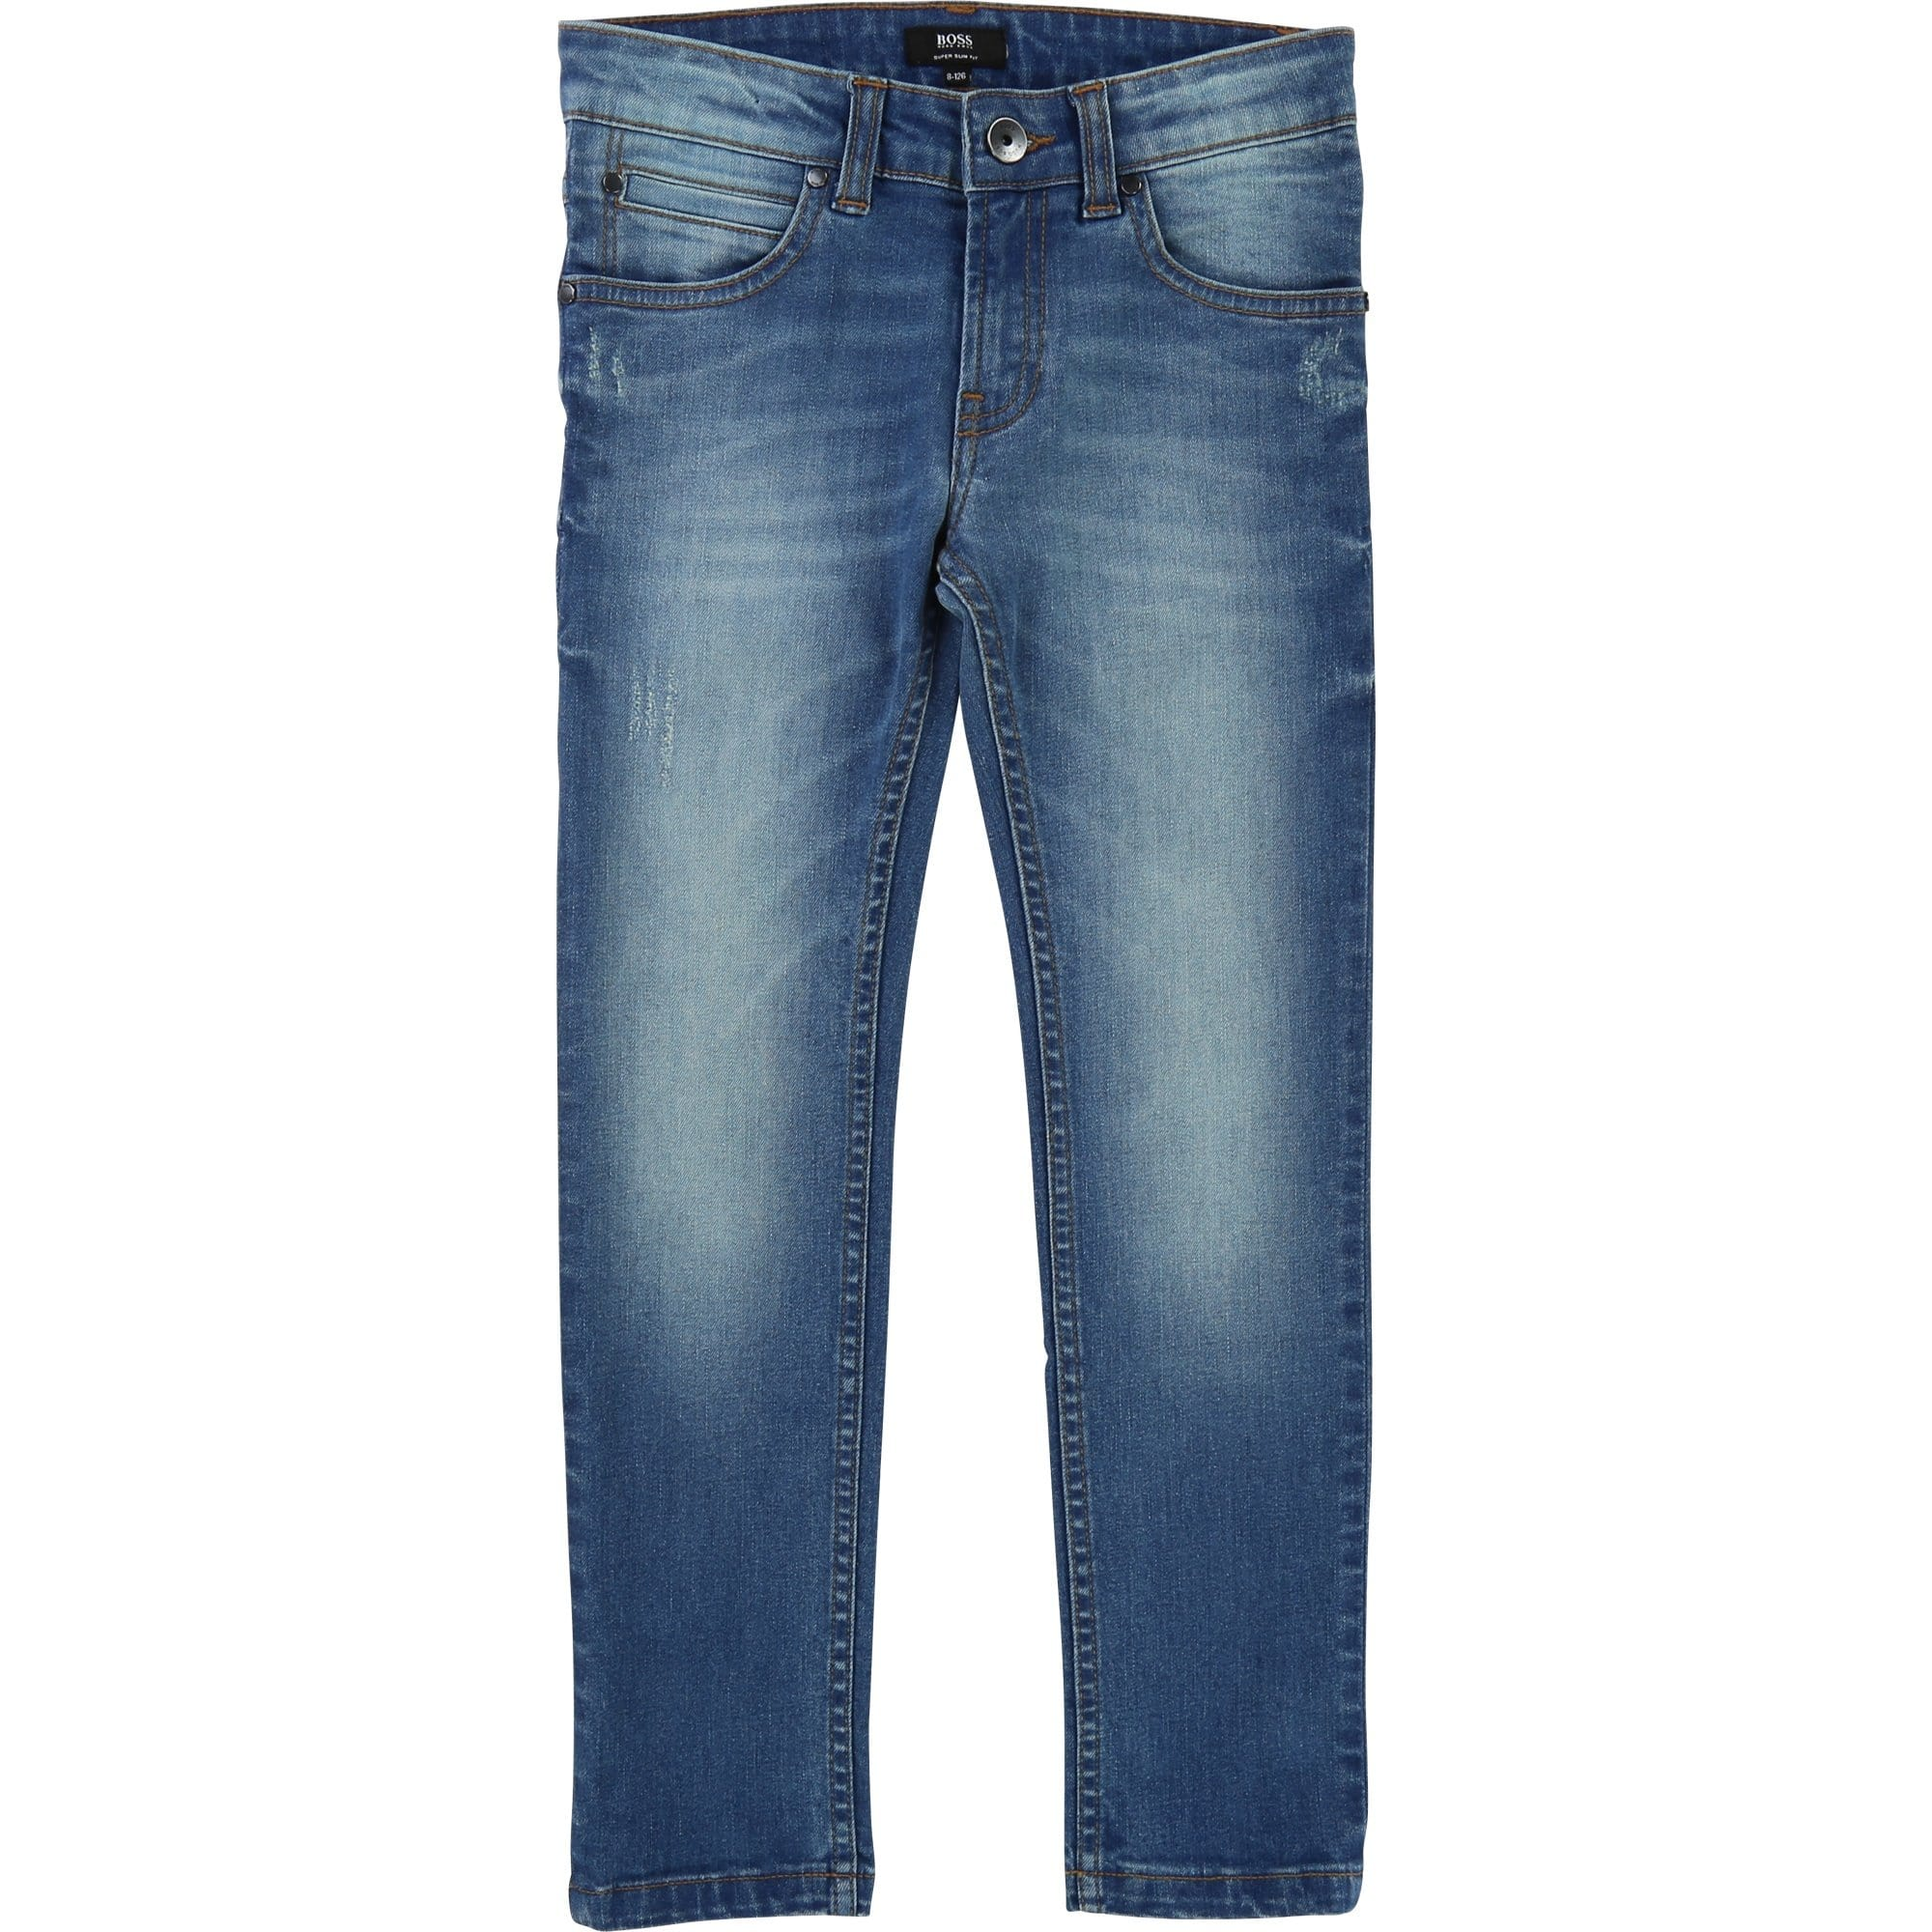 Hugo Boss Double Stone Denim Jeans